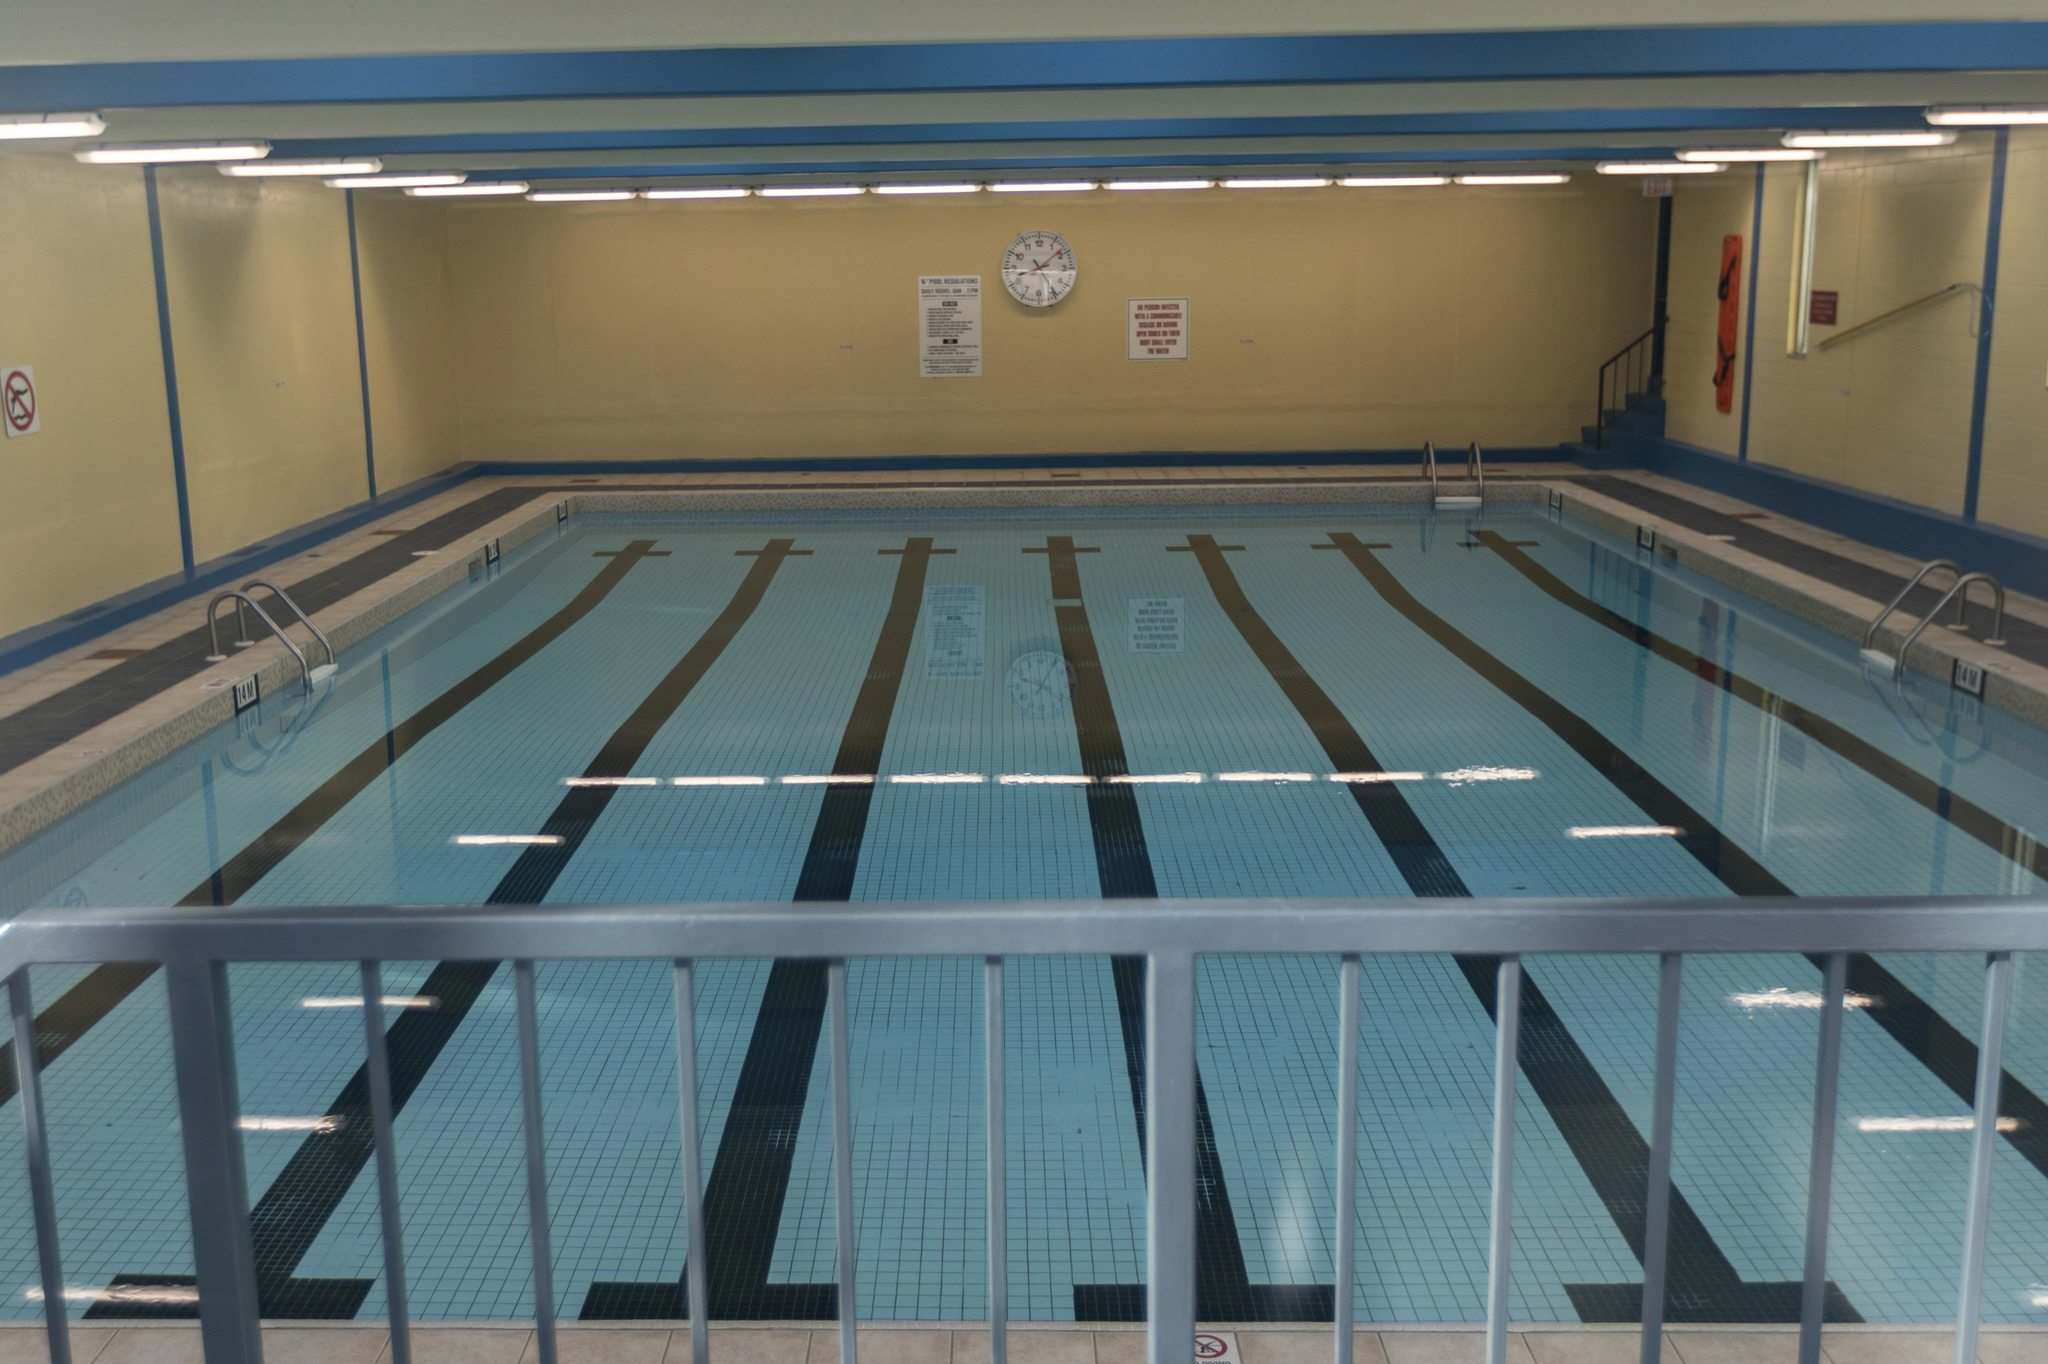 The Courts of St. James pool has depth markers indicating a one-metre shallow end, a 1.4-metre depth along a slope from the shallow to the deep end and a 2.4-metre depth in the deep end. There were lifesaving devices visible around the pool. (Sasha Sefter / Winnipeg Free Press)</p>